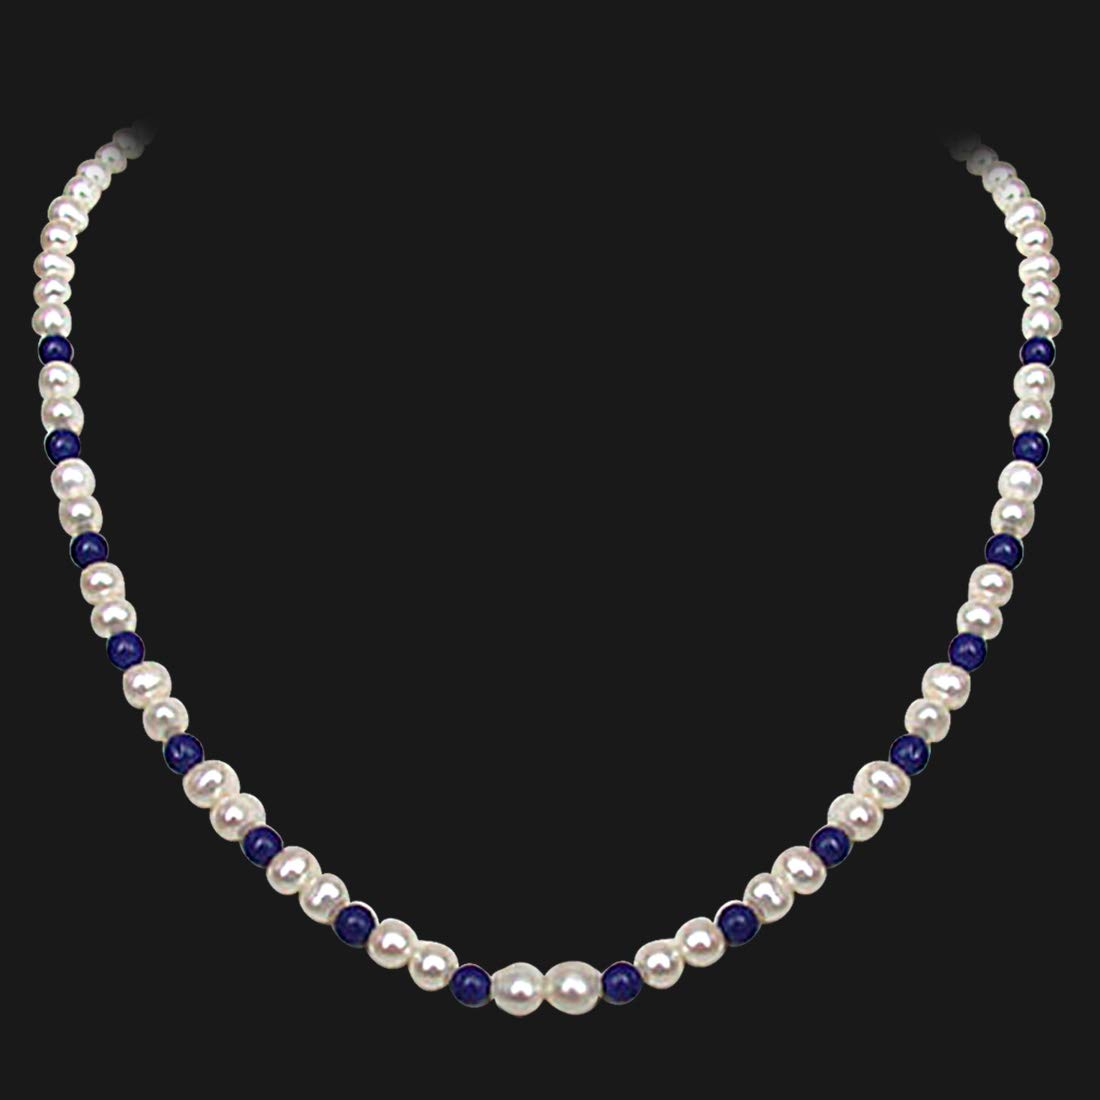 Regalia - Single Line Real Freshwater Pearl & Blue Lapiz Beads Necklace for Women (SN19)